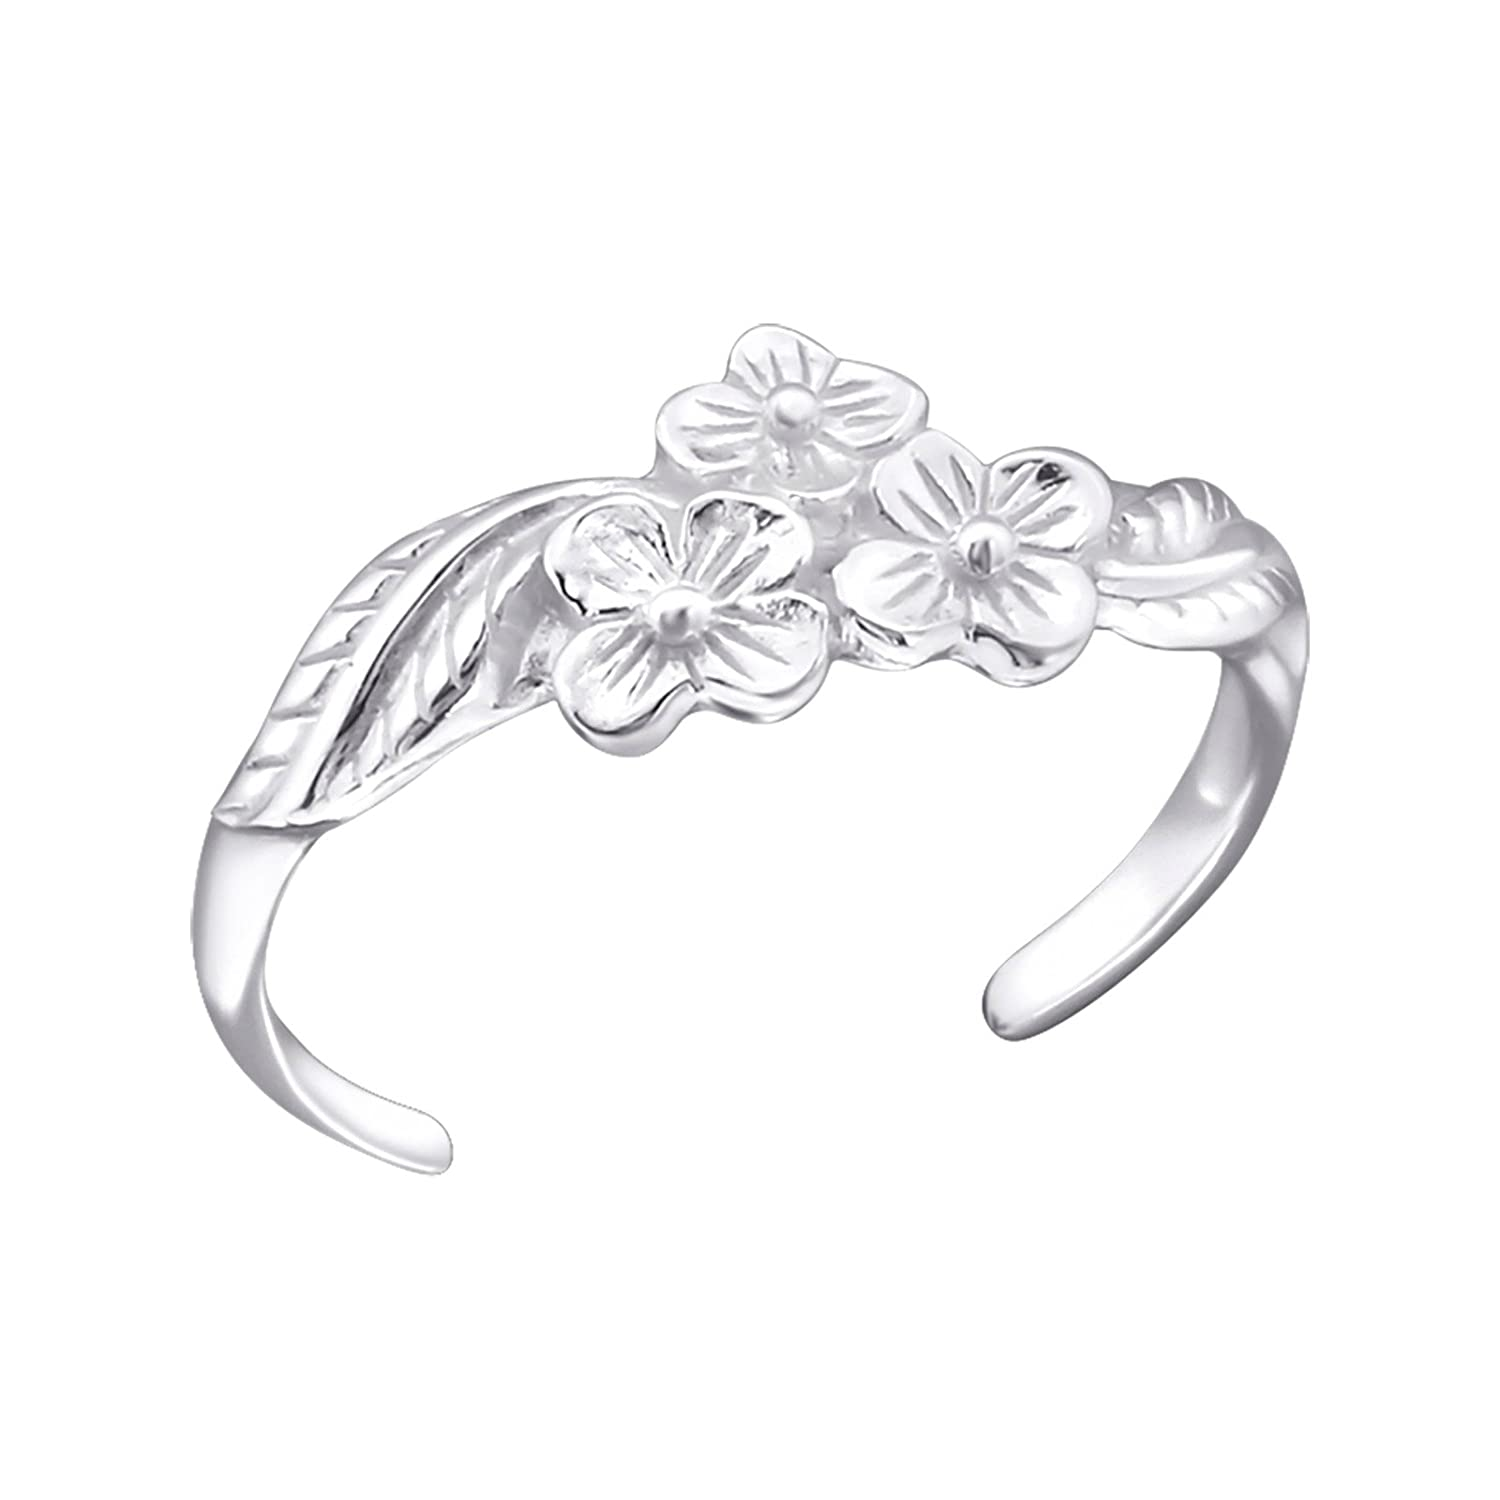 Antique Silver Lined Flowers Adjustable Mid Ring Toe Ring